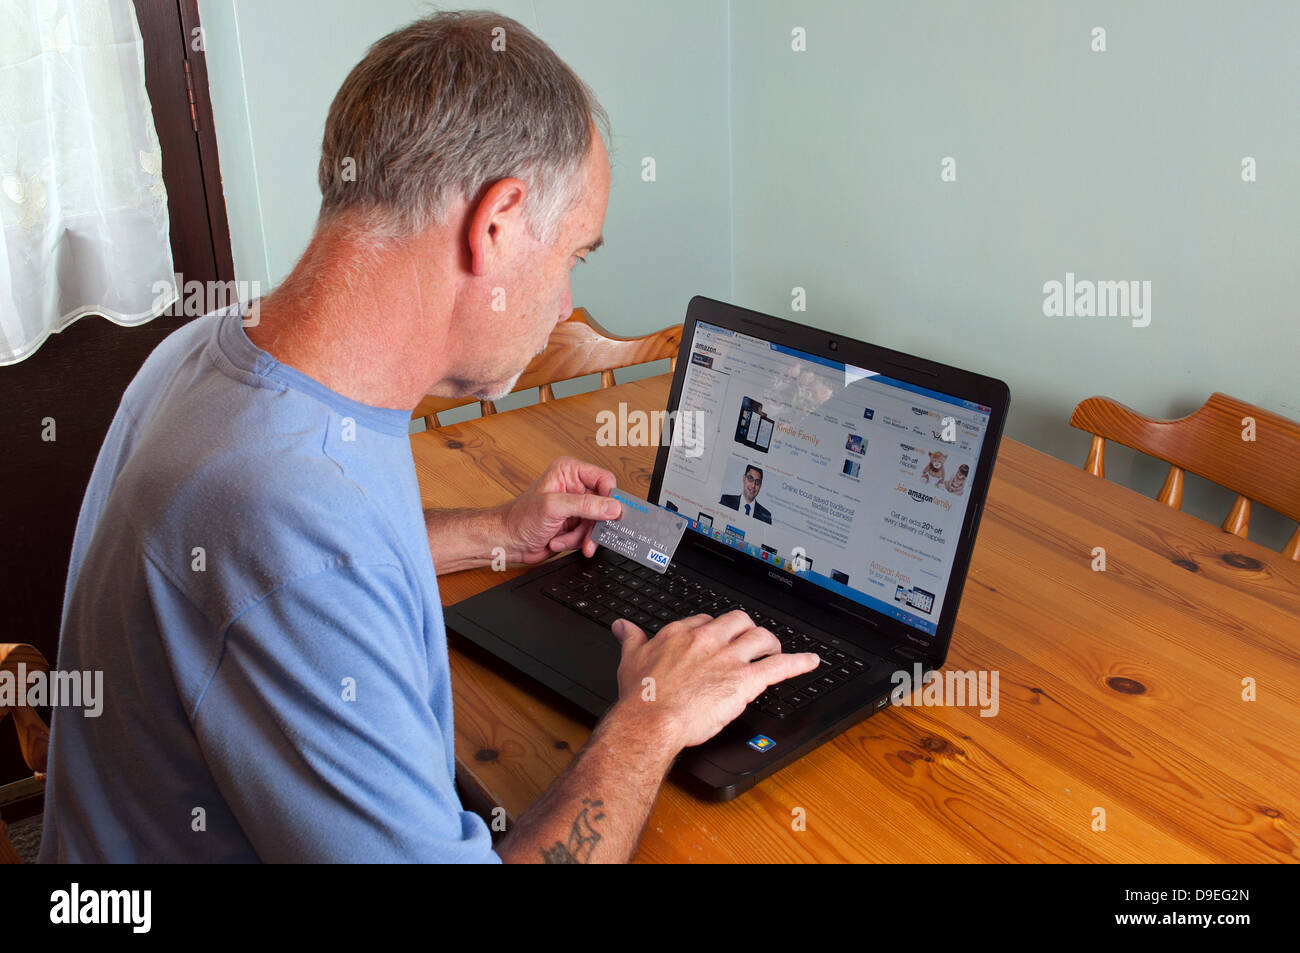 A middle age man online shopping at home - Stock Image